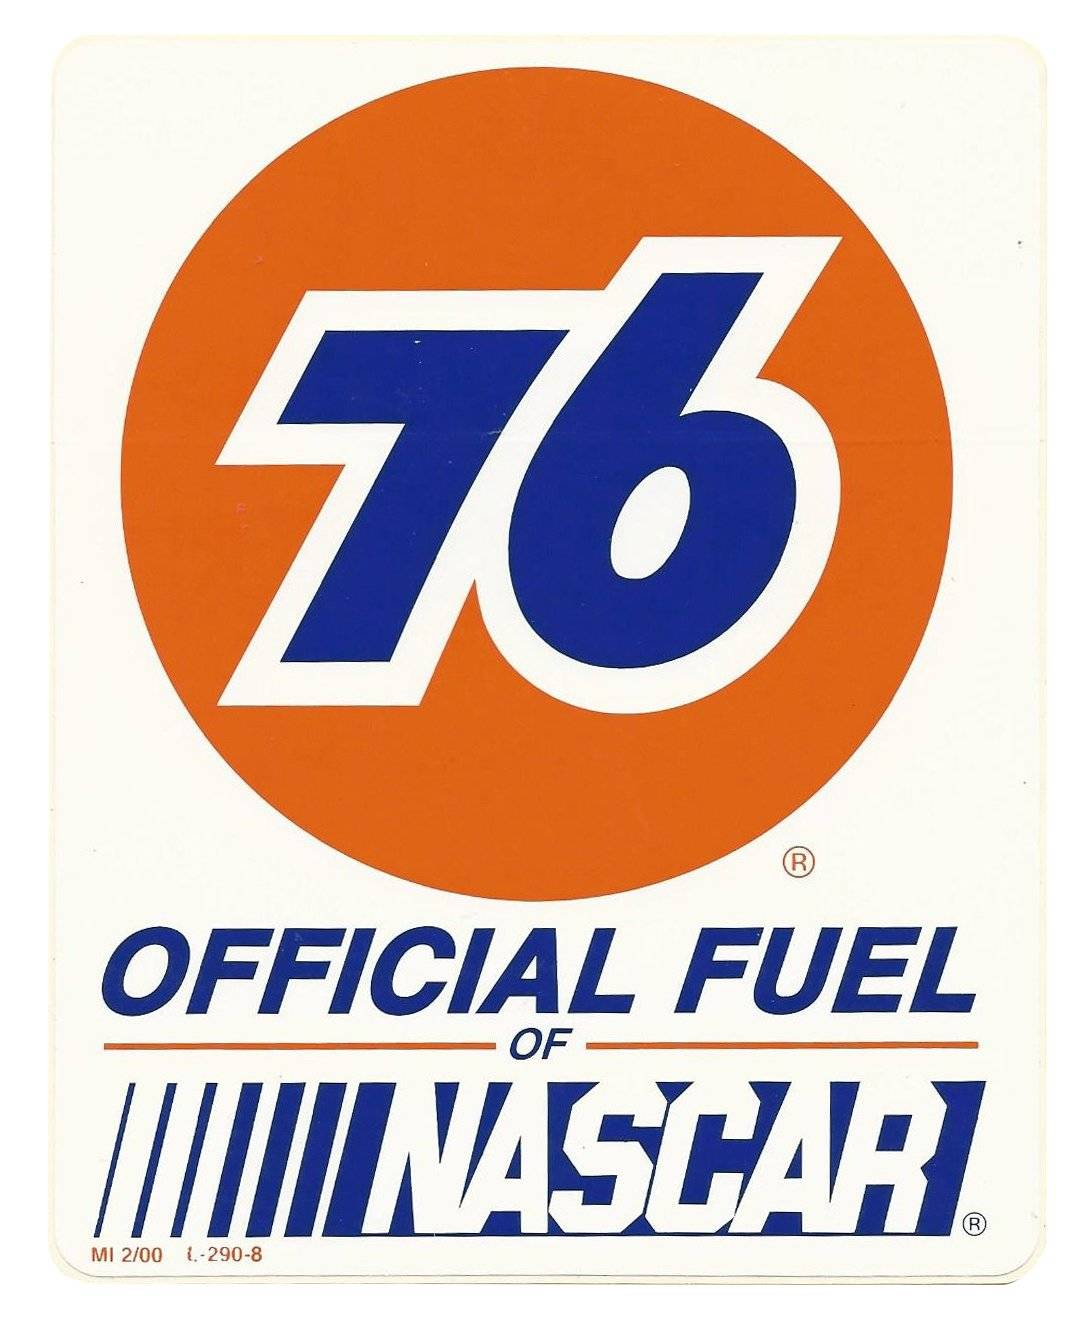 76 nascar vintage race logo decal sticker